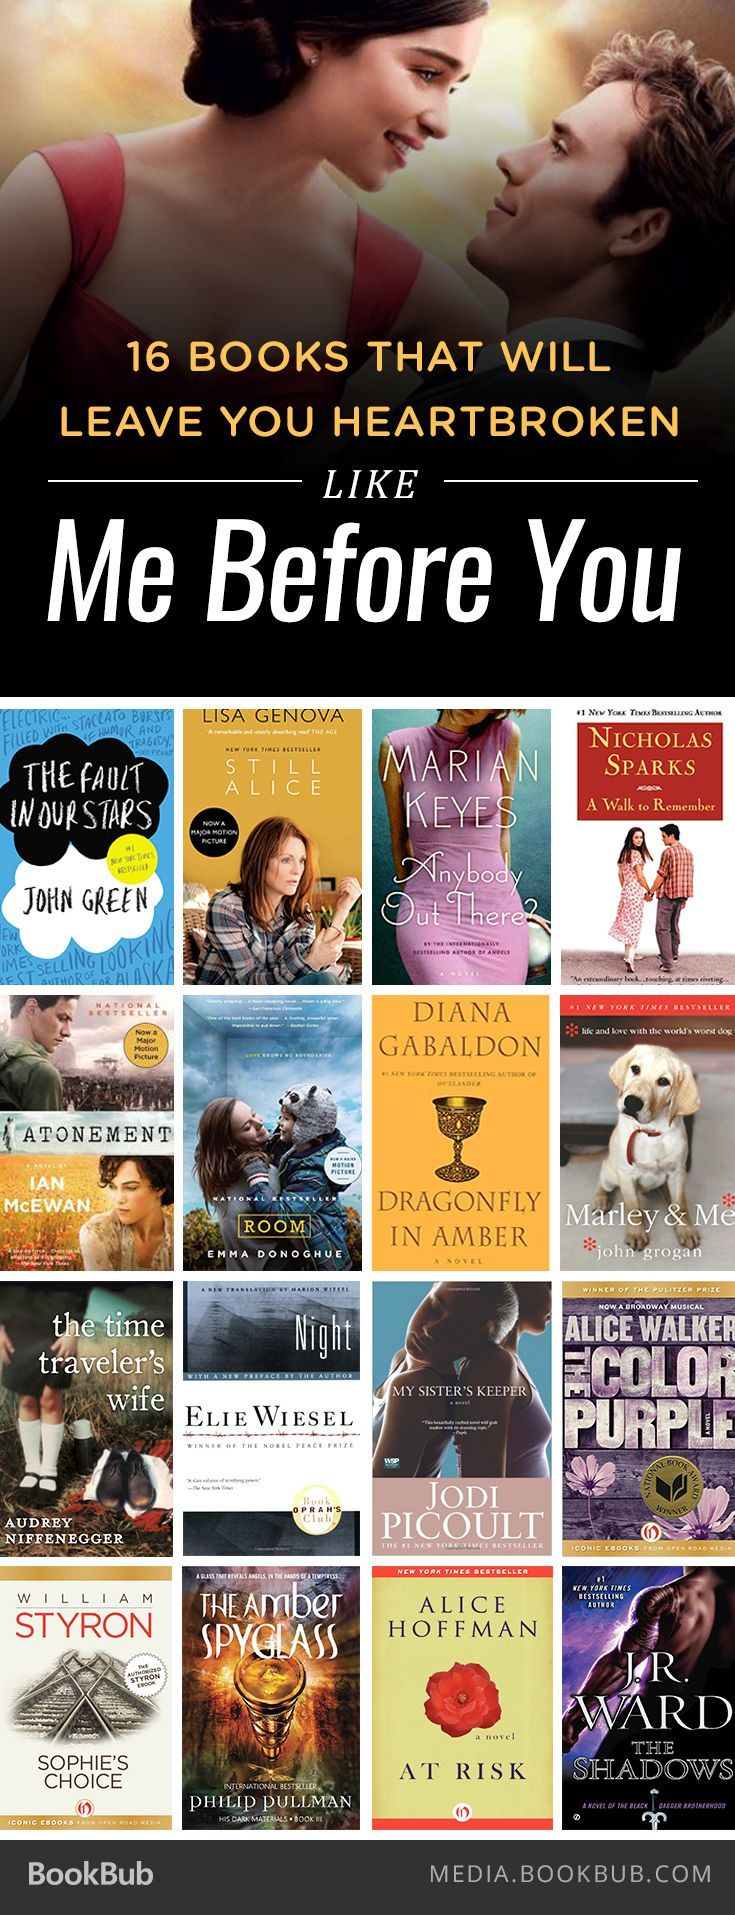 Grab the tissues! These 16 books will leave you heartbroken like Jojo Moyes's Me Before You.